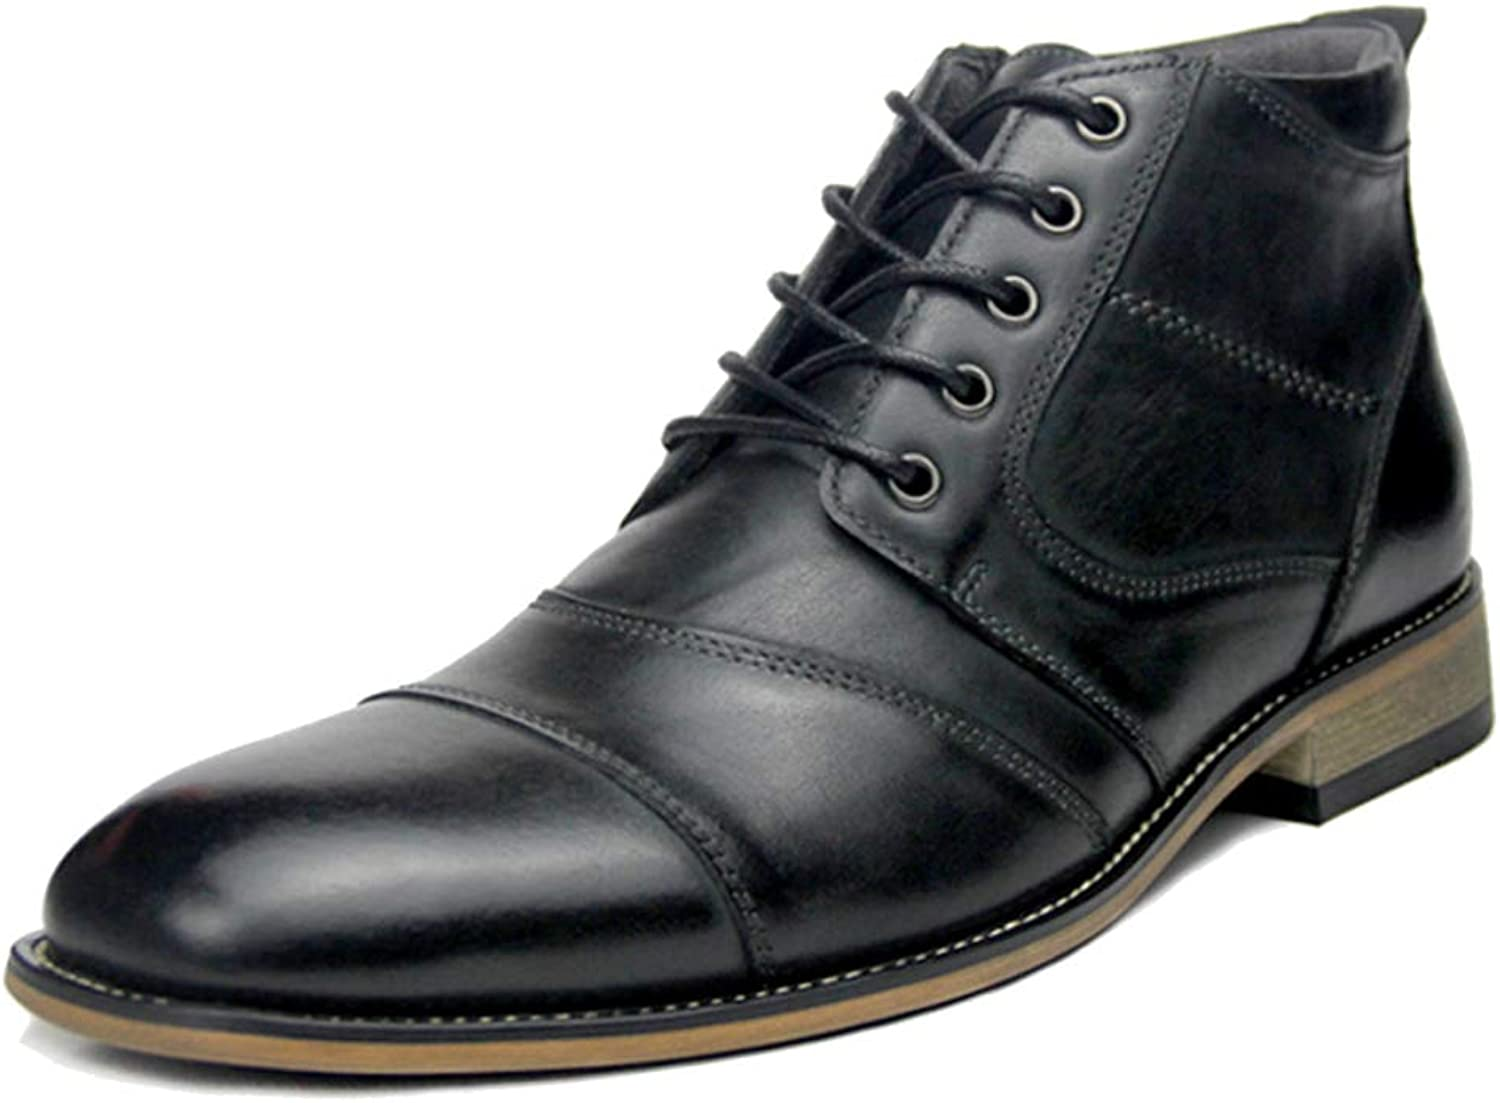 MERRYHE Men Pointed Toe Martin Boots Lace Up Side Zip Ankle Boot Formal Dress shoes Work Party Footwear Hiking Genuine Leather shoes